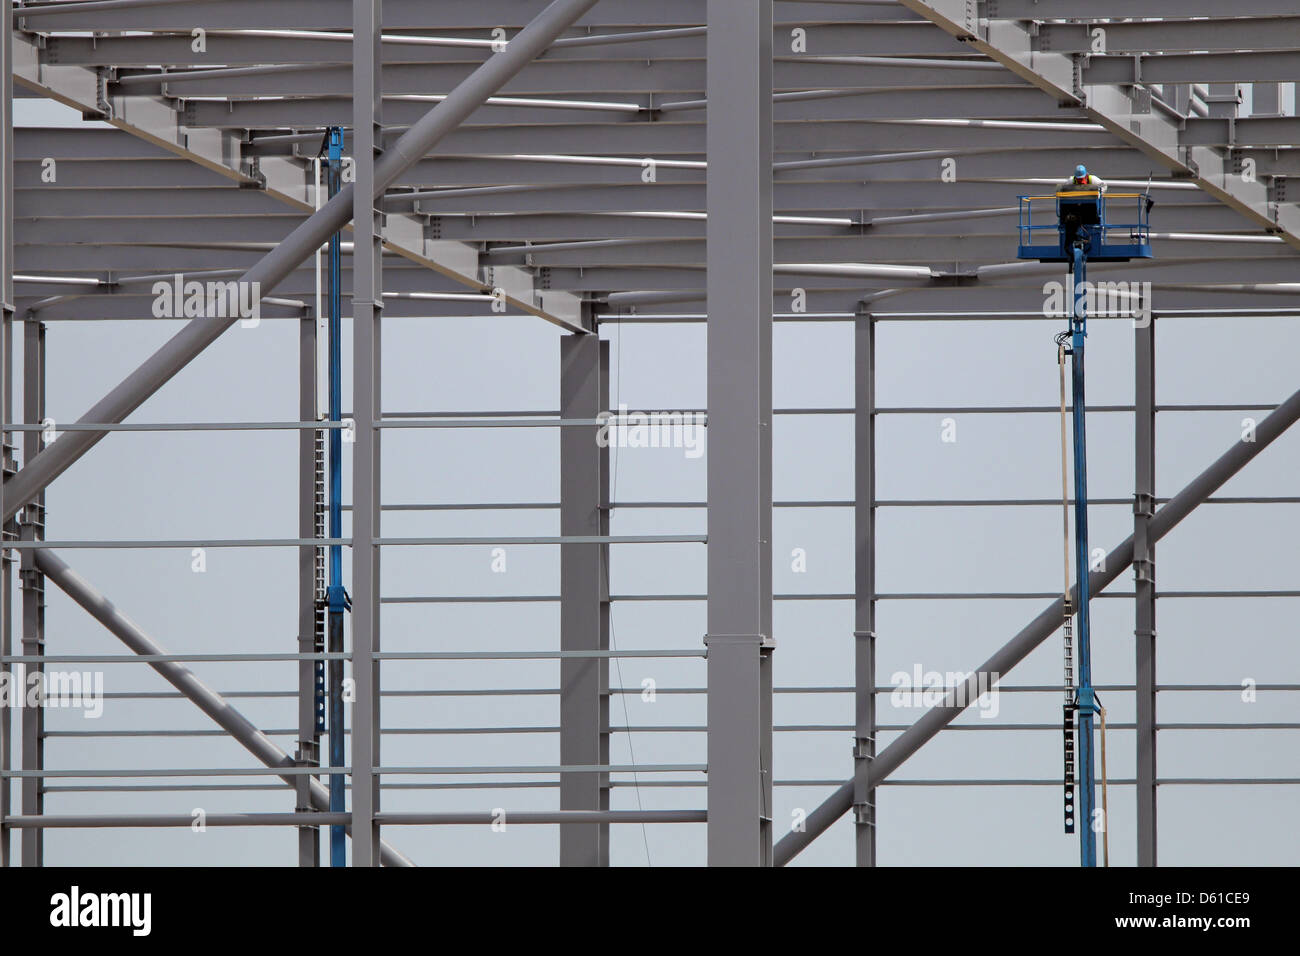 A new hangar is under in construction at the Leipzig-Halle airport in Schkeuditz, Germany, 16 April 2012. Photo: Stock Photo